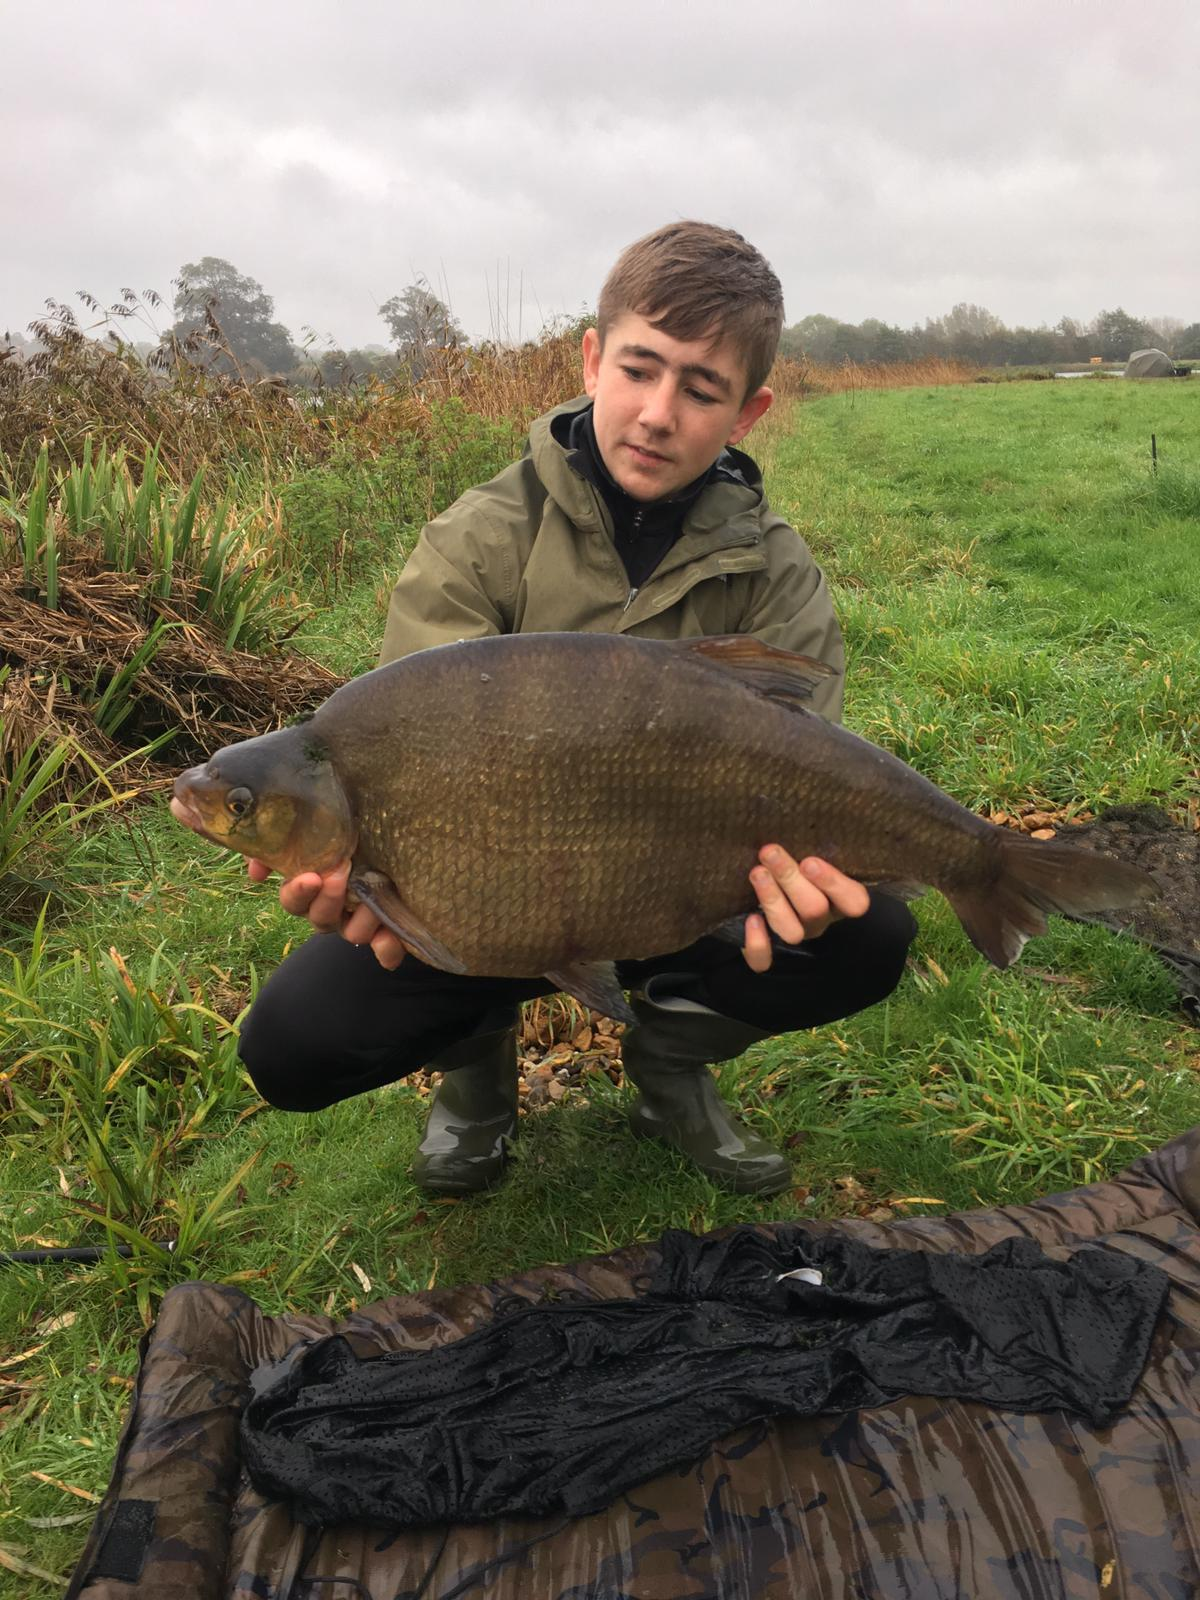 Billy admires his 16 lb bream before - not knowing he was about to catch the biggest bream of 2019!